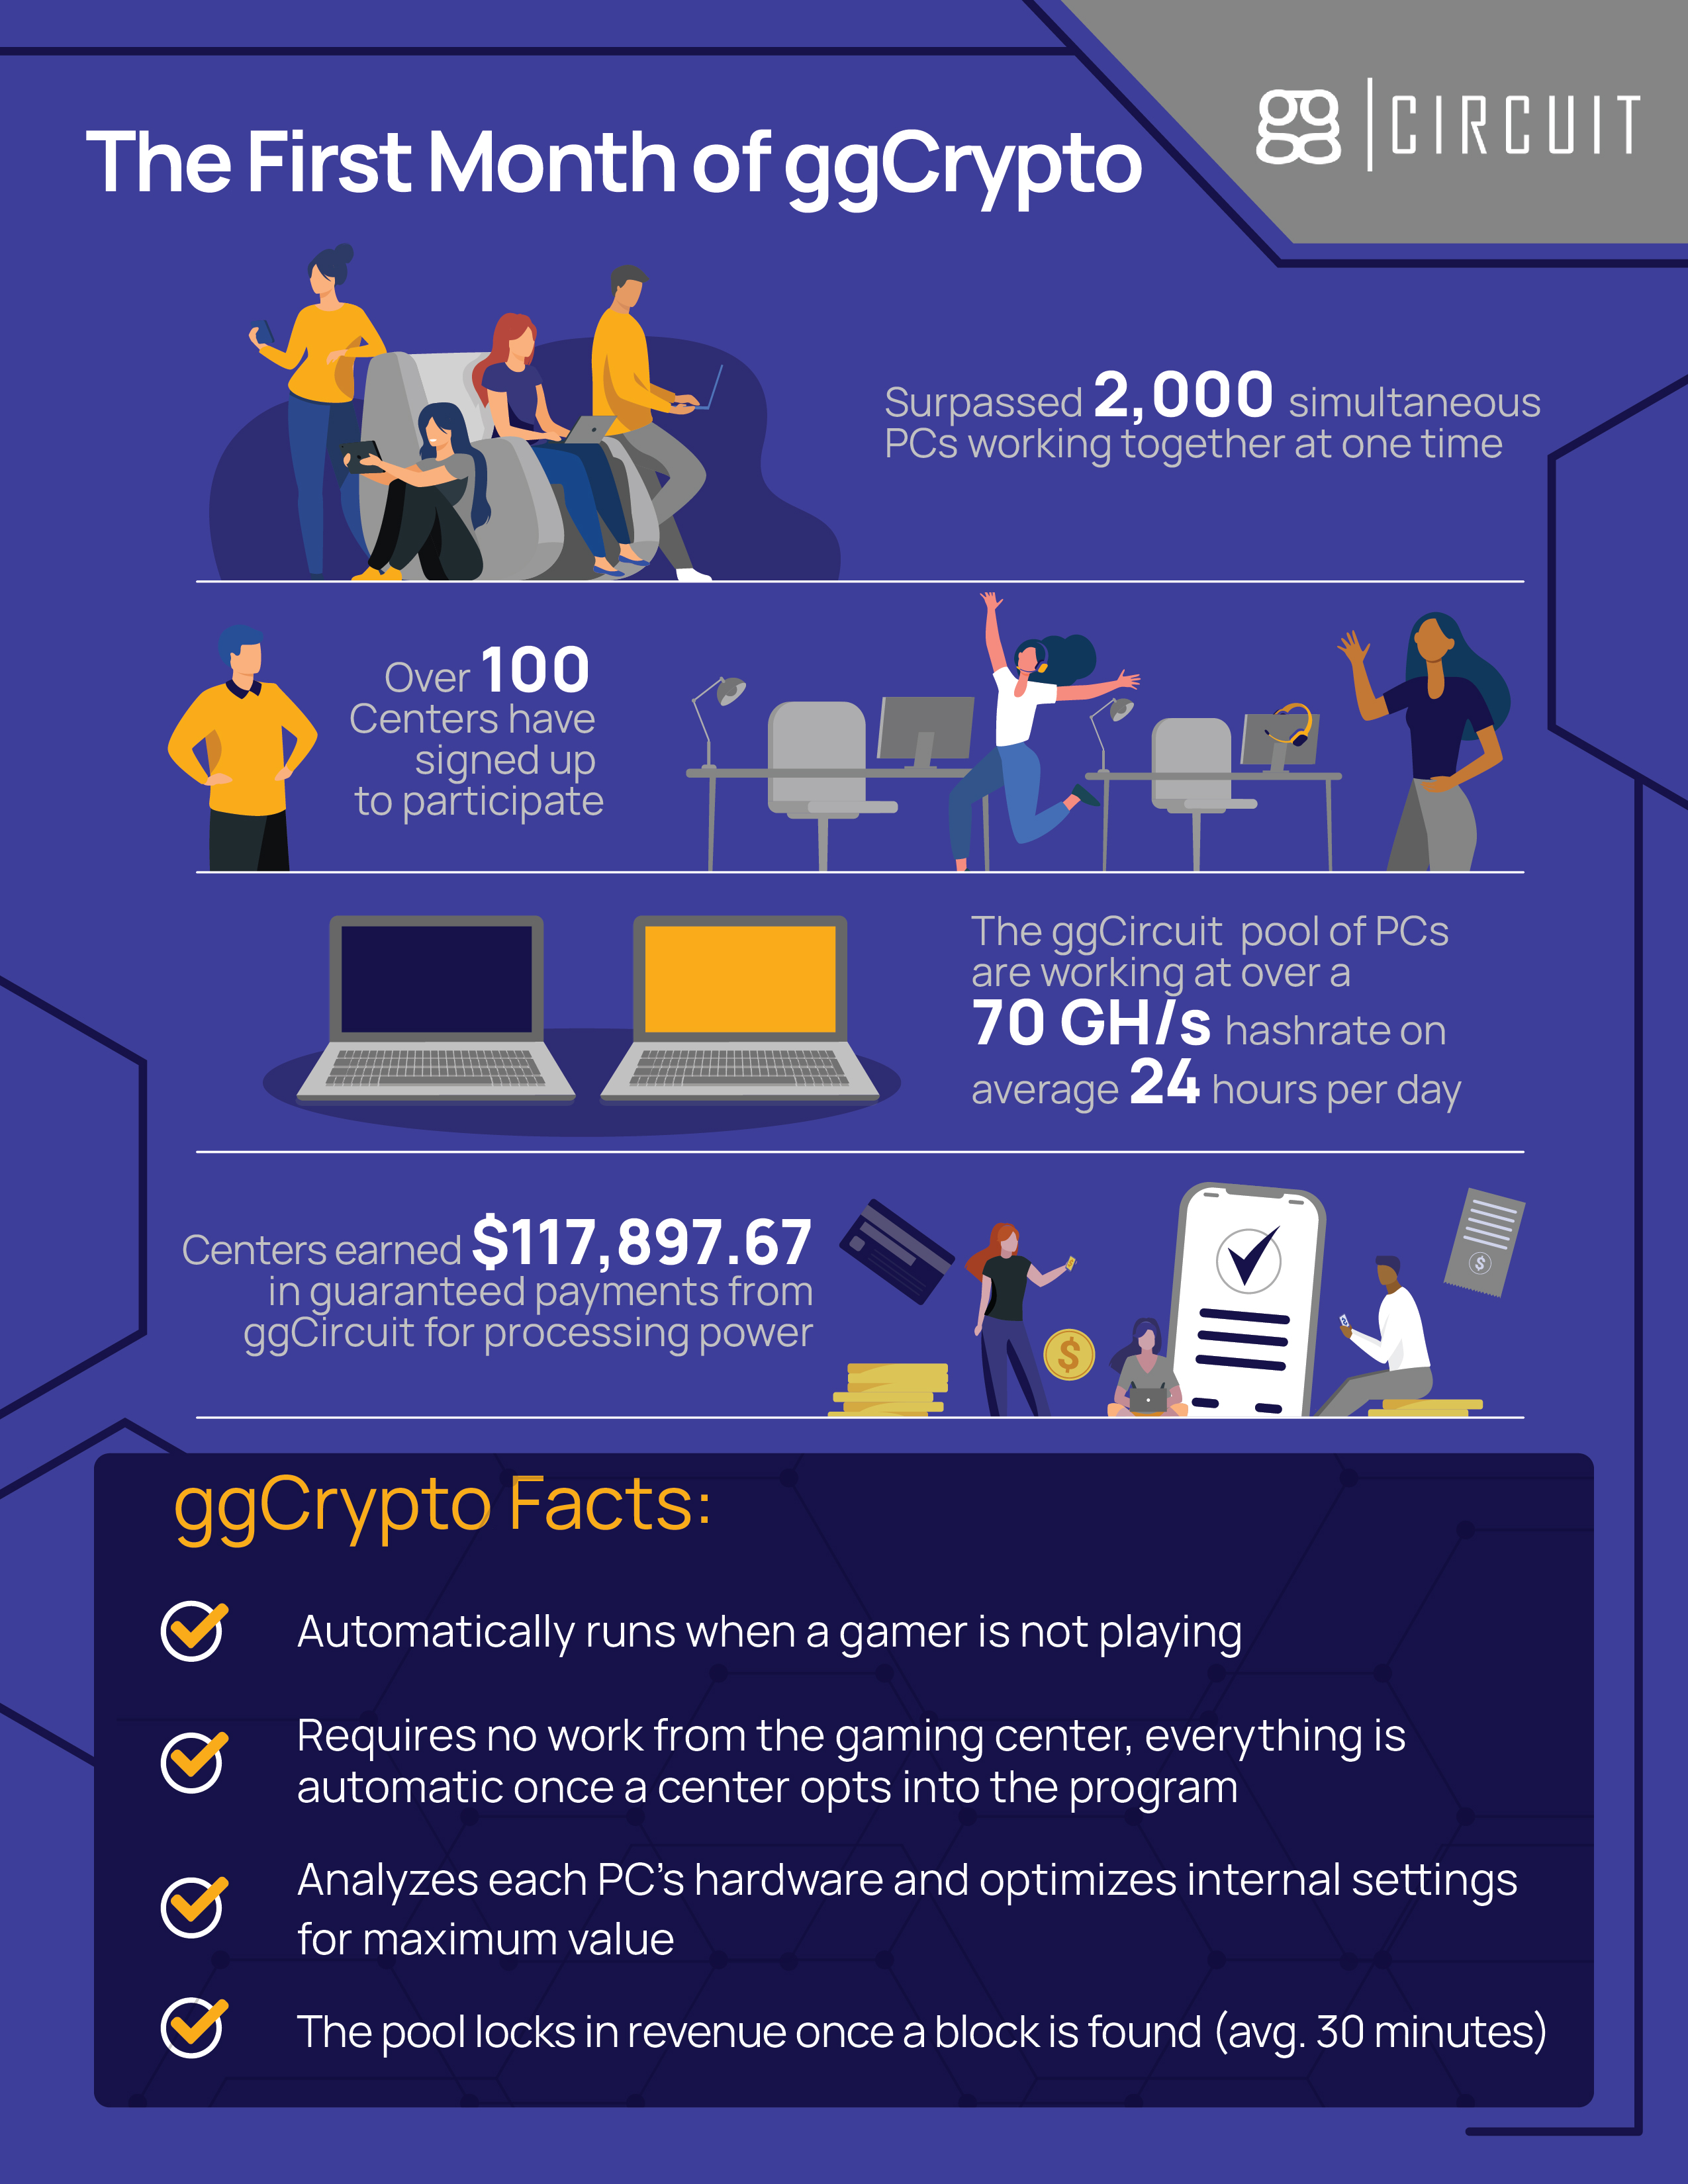 The first month of ggCrypto - esports centers earned $117,897.67 in guaranteed payments